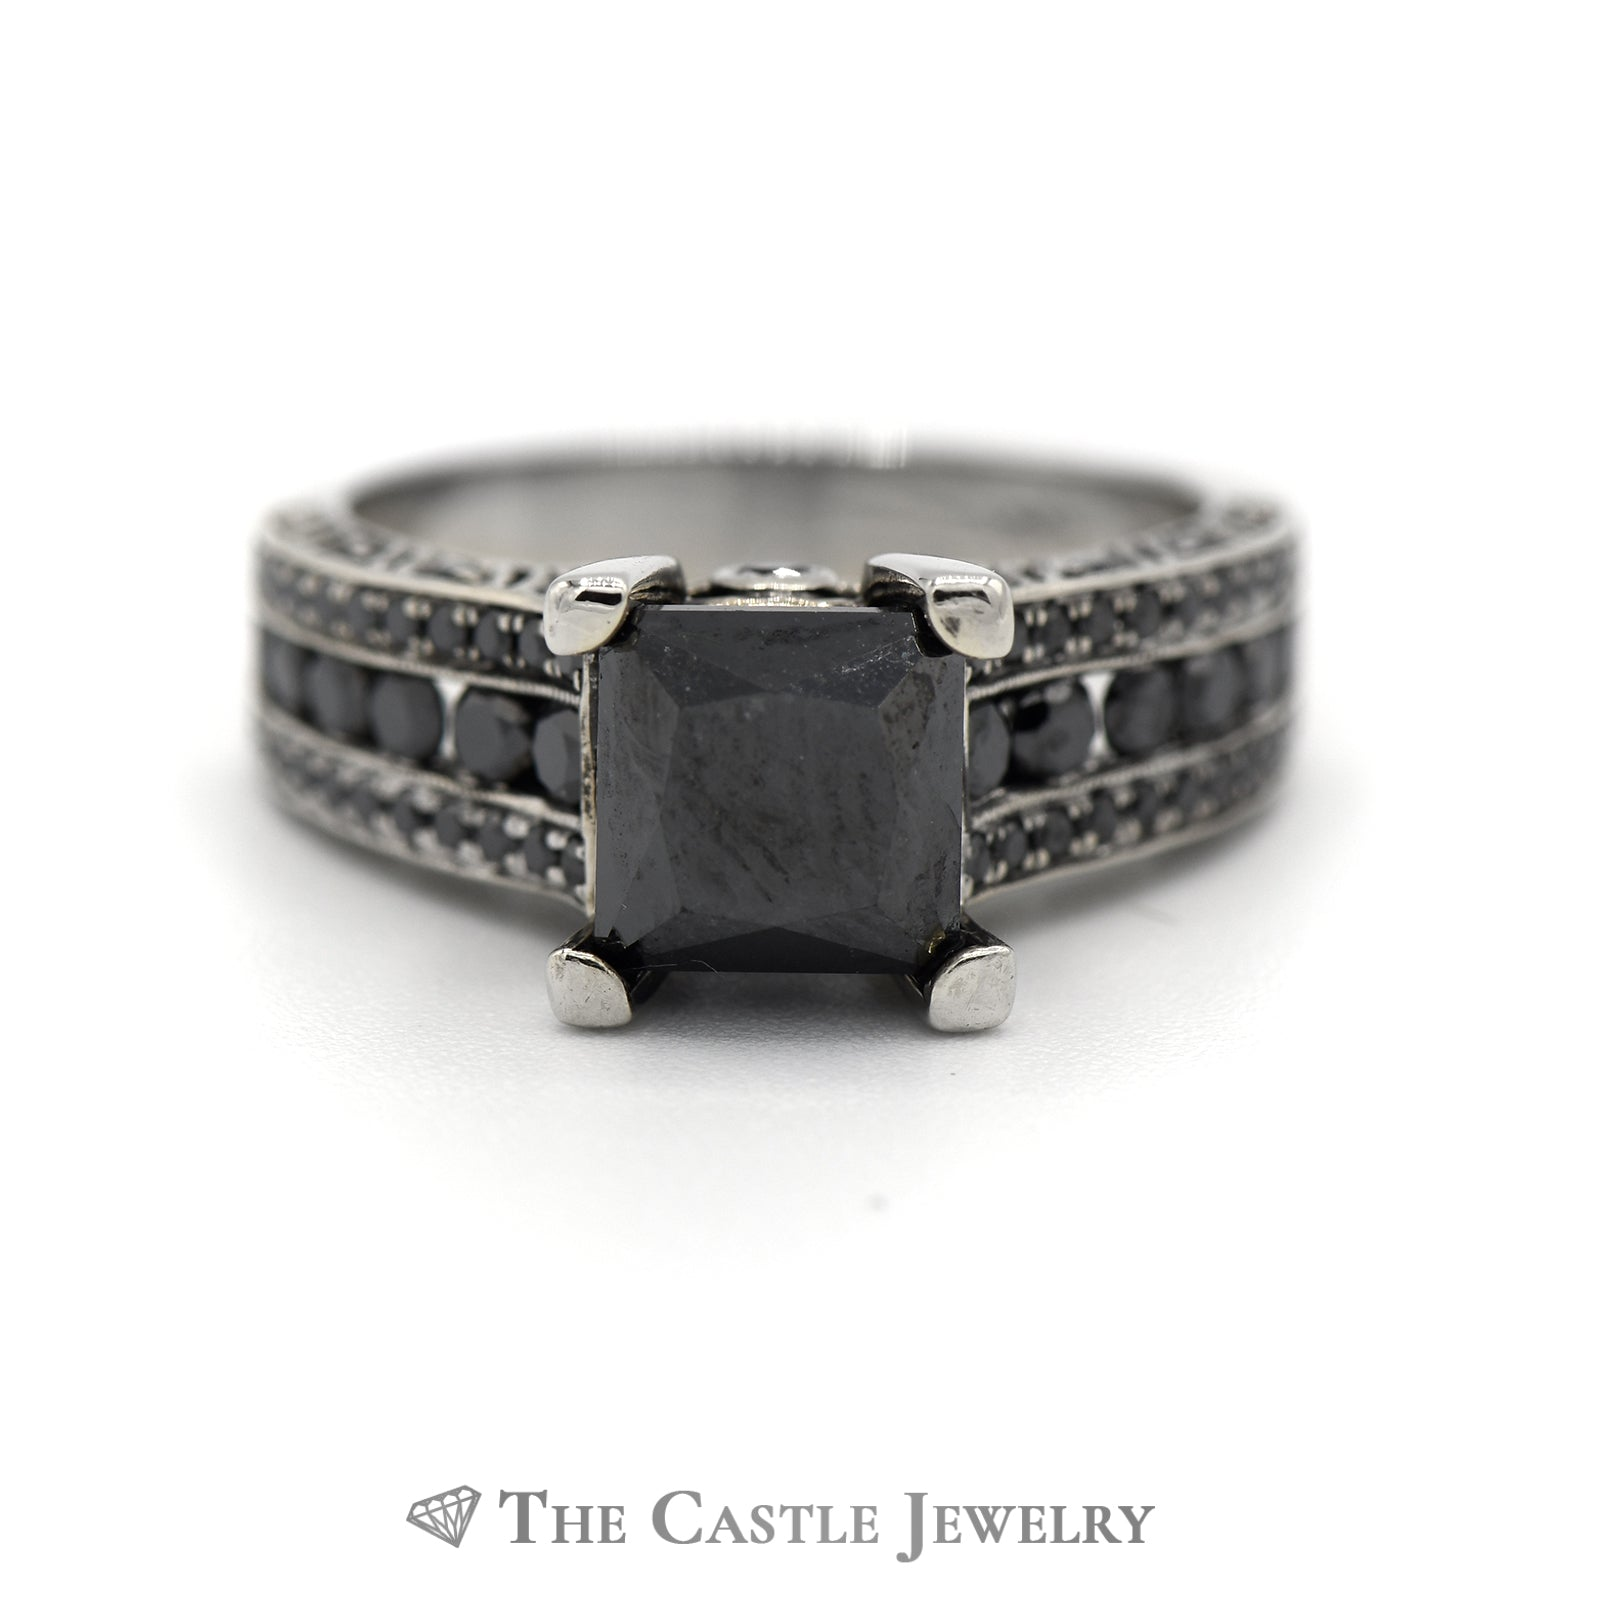 2.75cttw Square Black Diamond Engagement Ring with Black Diamond Accents in 14k White Gold